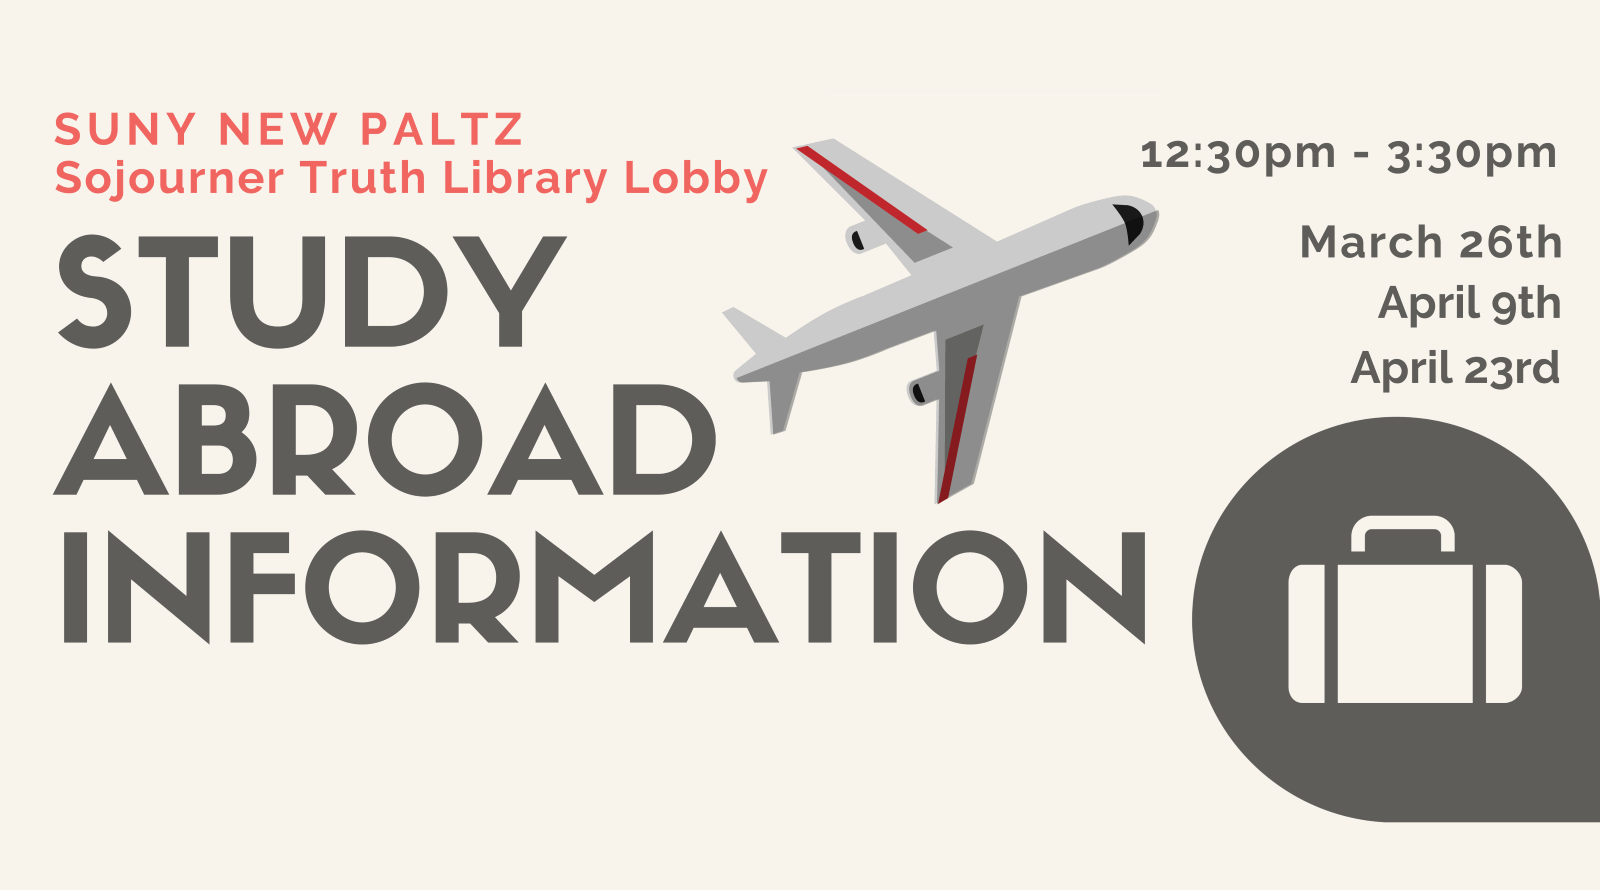 Study Abroad Information in the Library Lobby